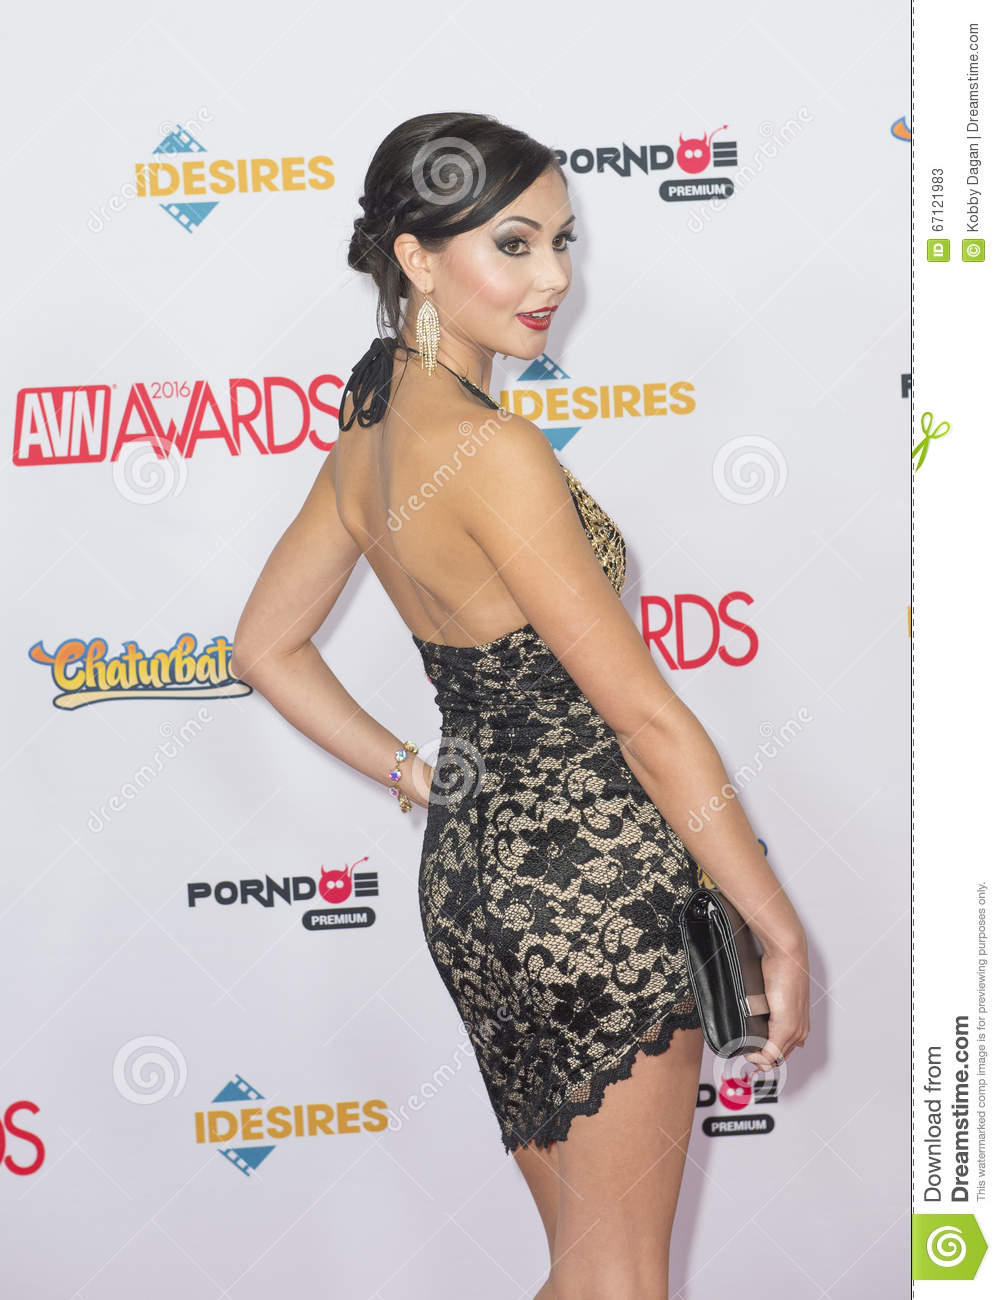 Las Vegas Jan 23 Adult Film Actress Ariana Marie Attends The 2016 Adult Video News Awards At The Hard Rock Hotel Casino On January 23